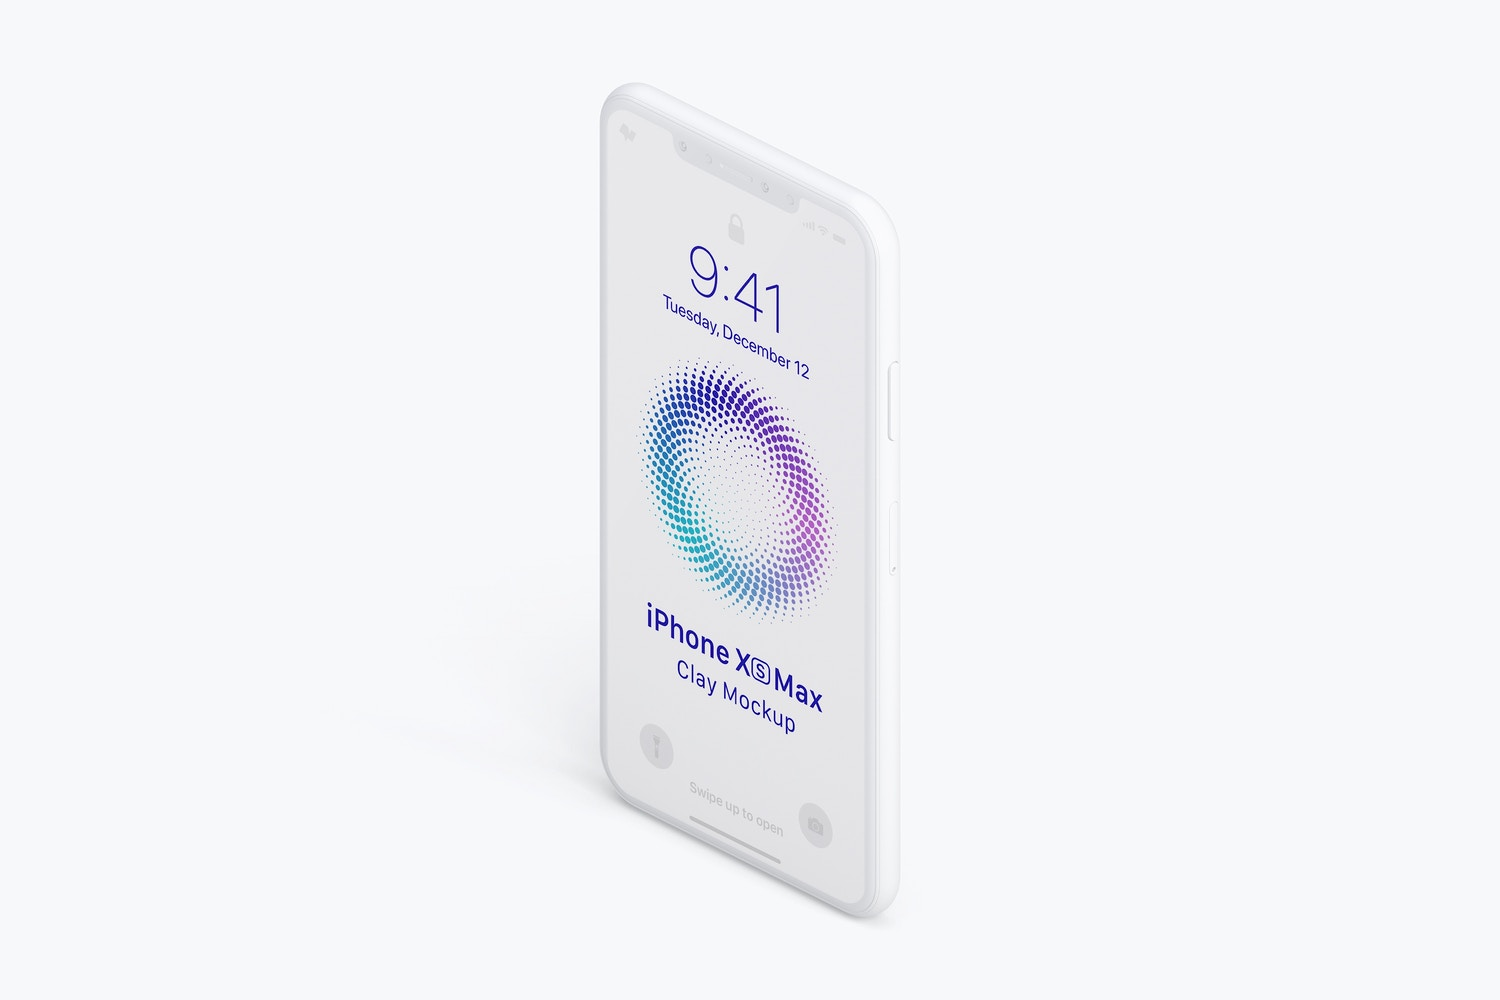 Isometric Clay iPhone XS Max Mockup, Left View 02 by Original Mockups on Original Mockups